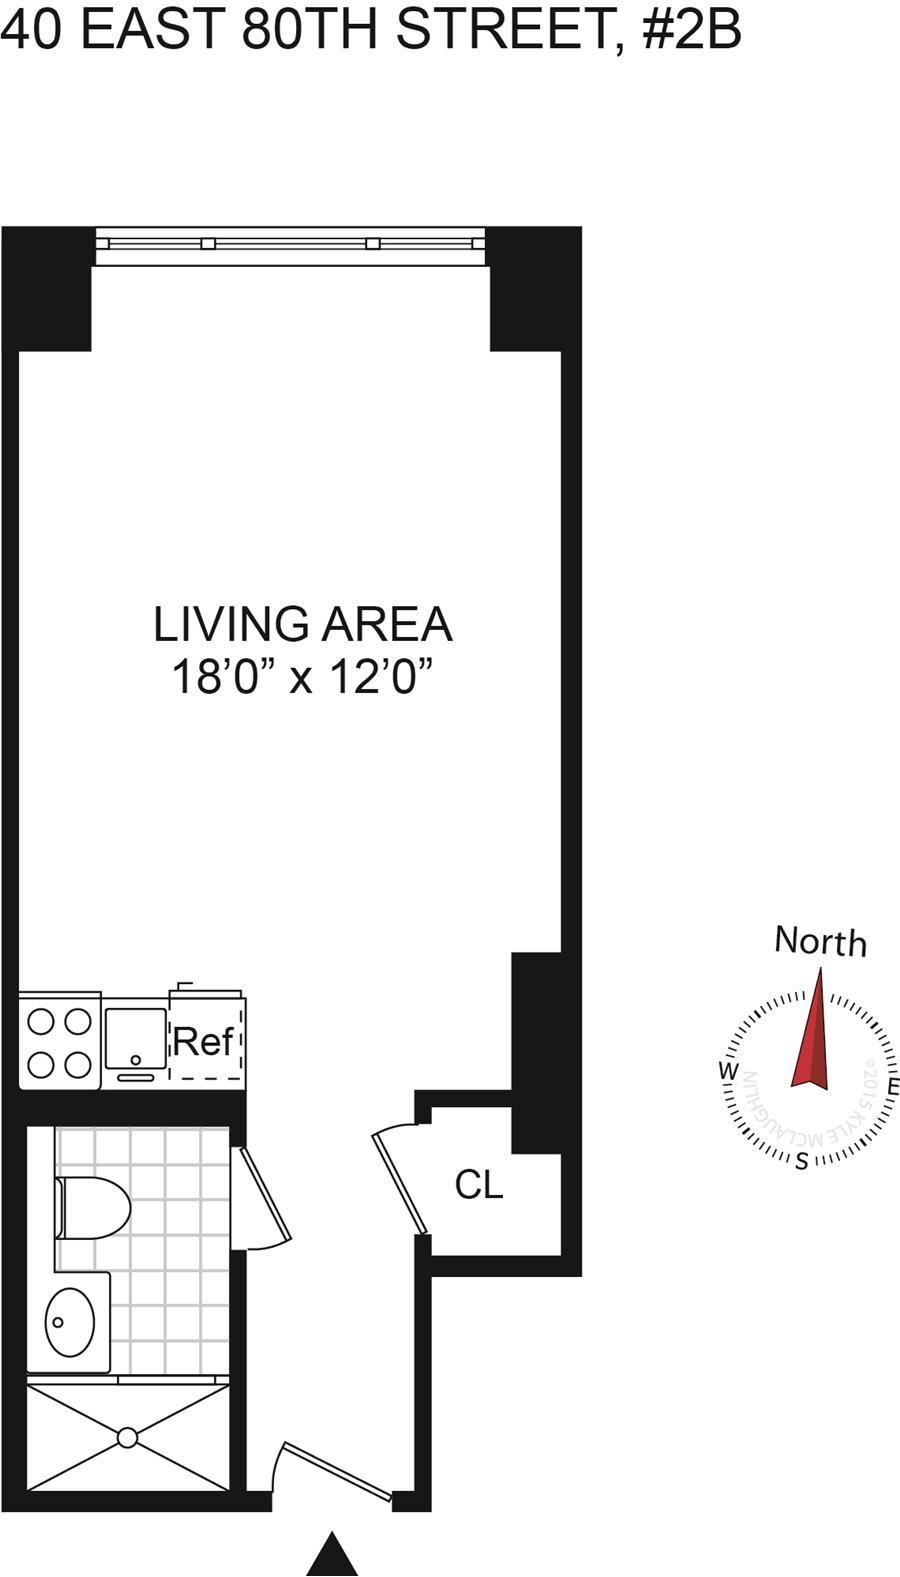 Floor plan of 40 East 80 Apartment Corp, 40 East 80th St, 2B - Upper East Side, New York